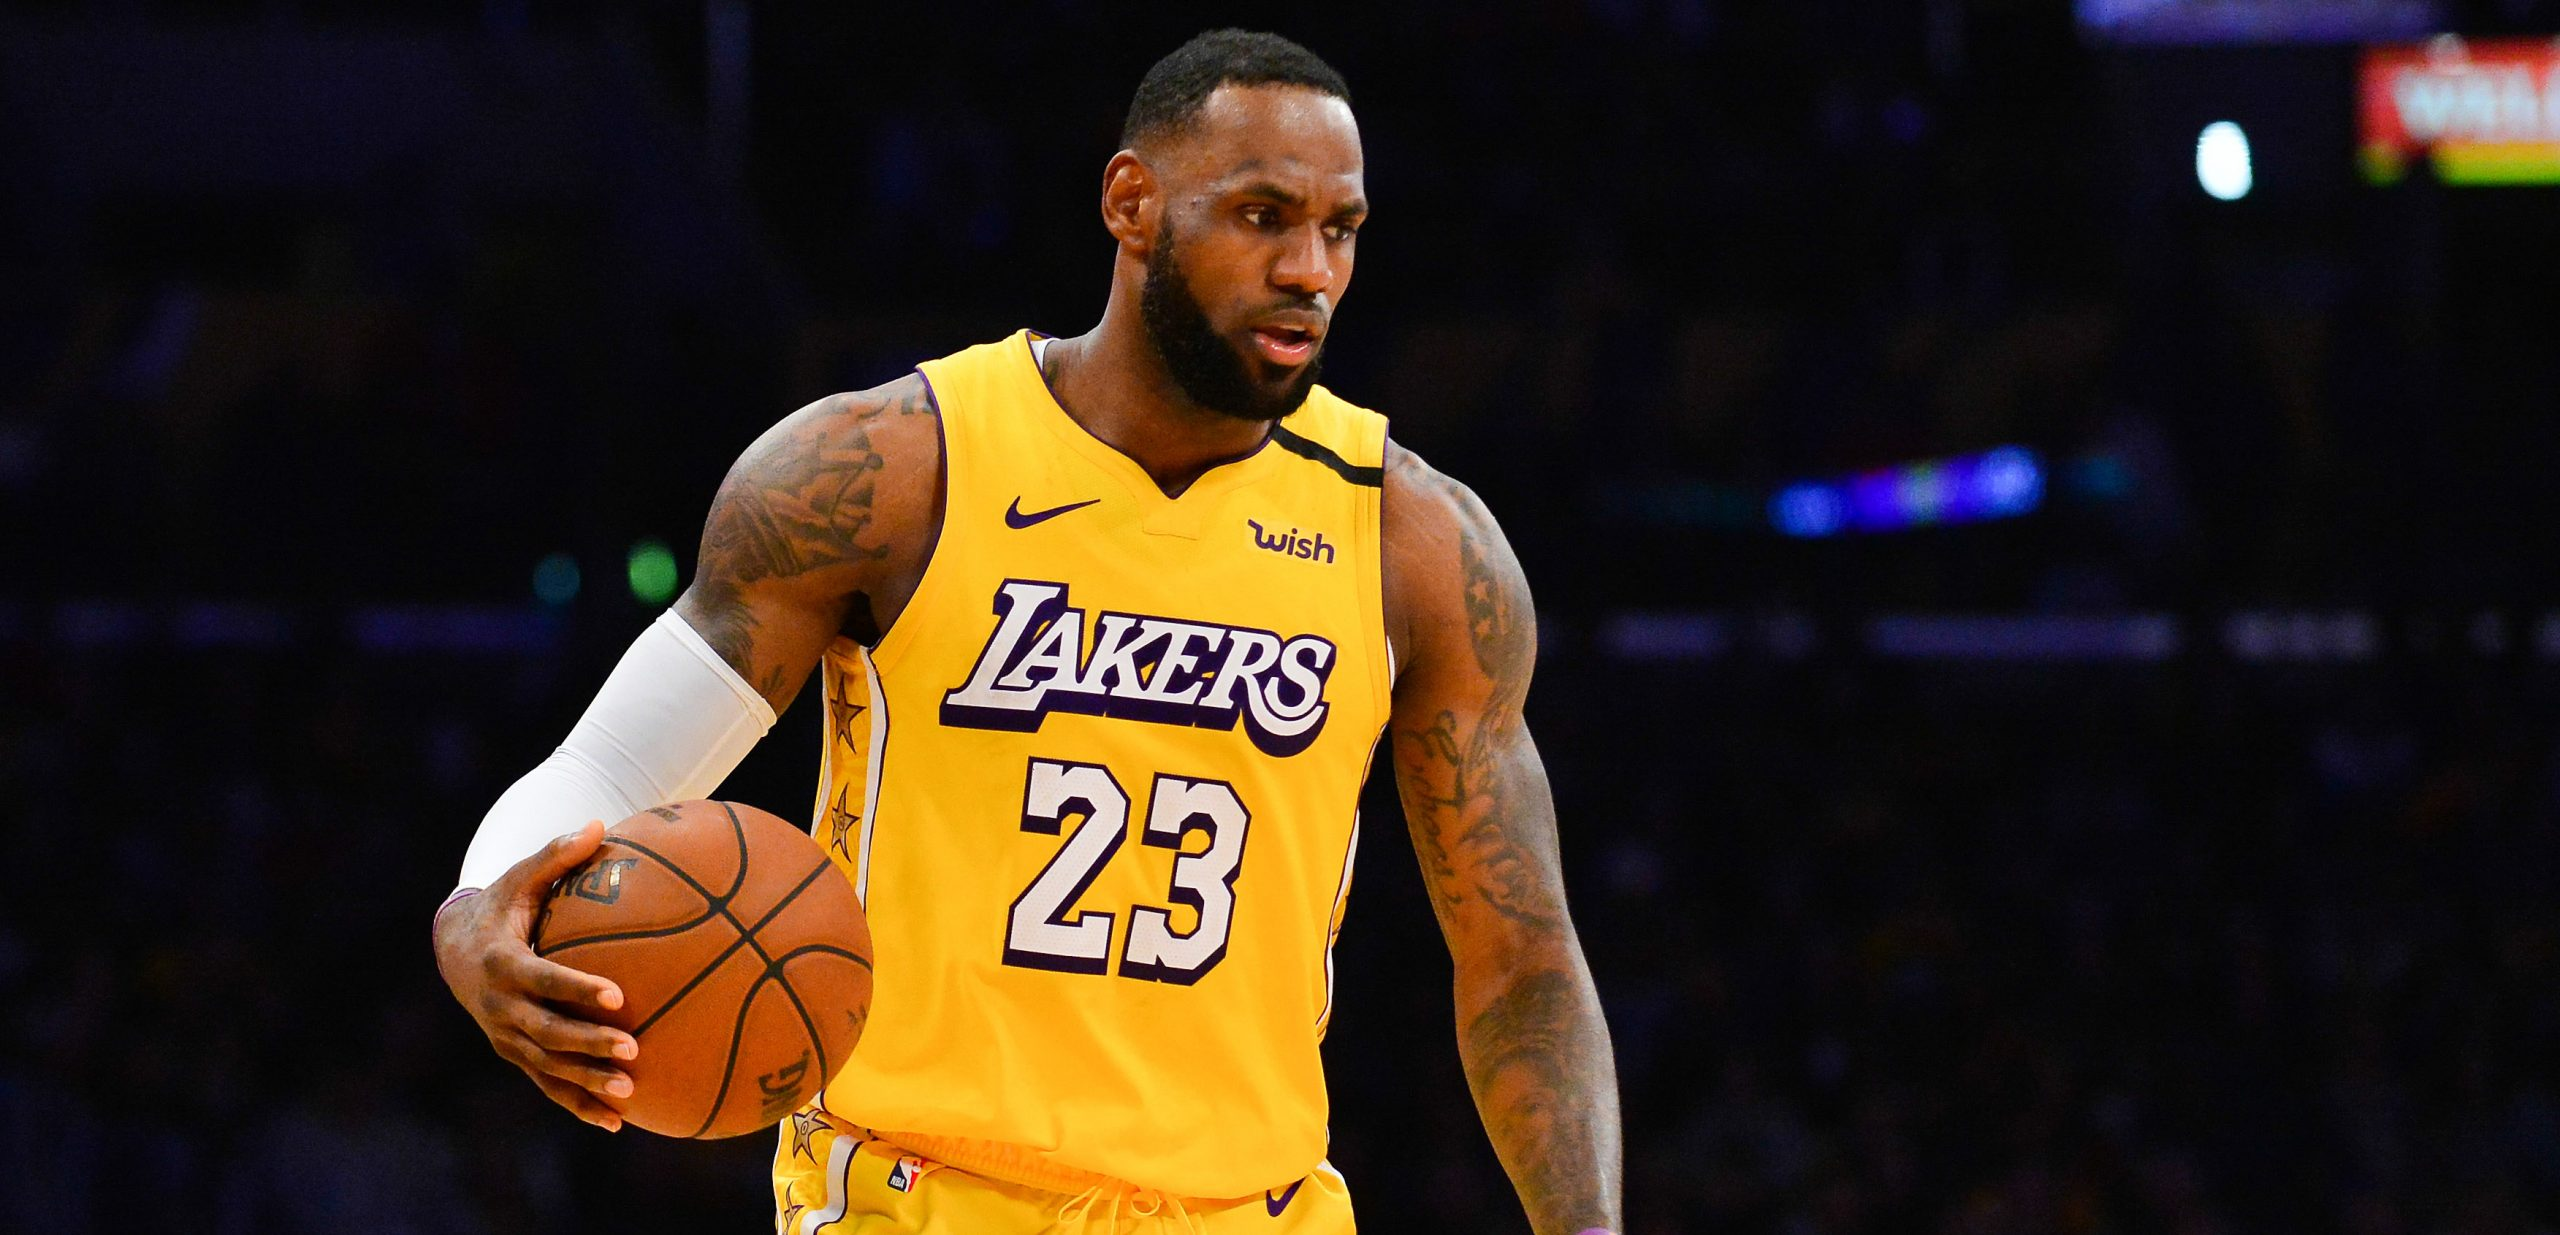 LeBron James from the LA Lakers probably still is the biggest star in the NBA - returning on betFIRST TV